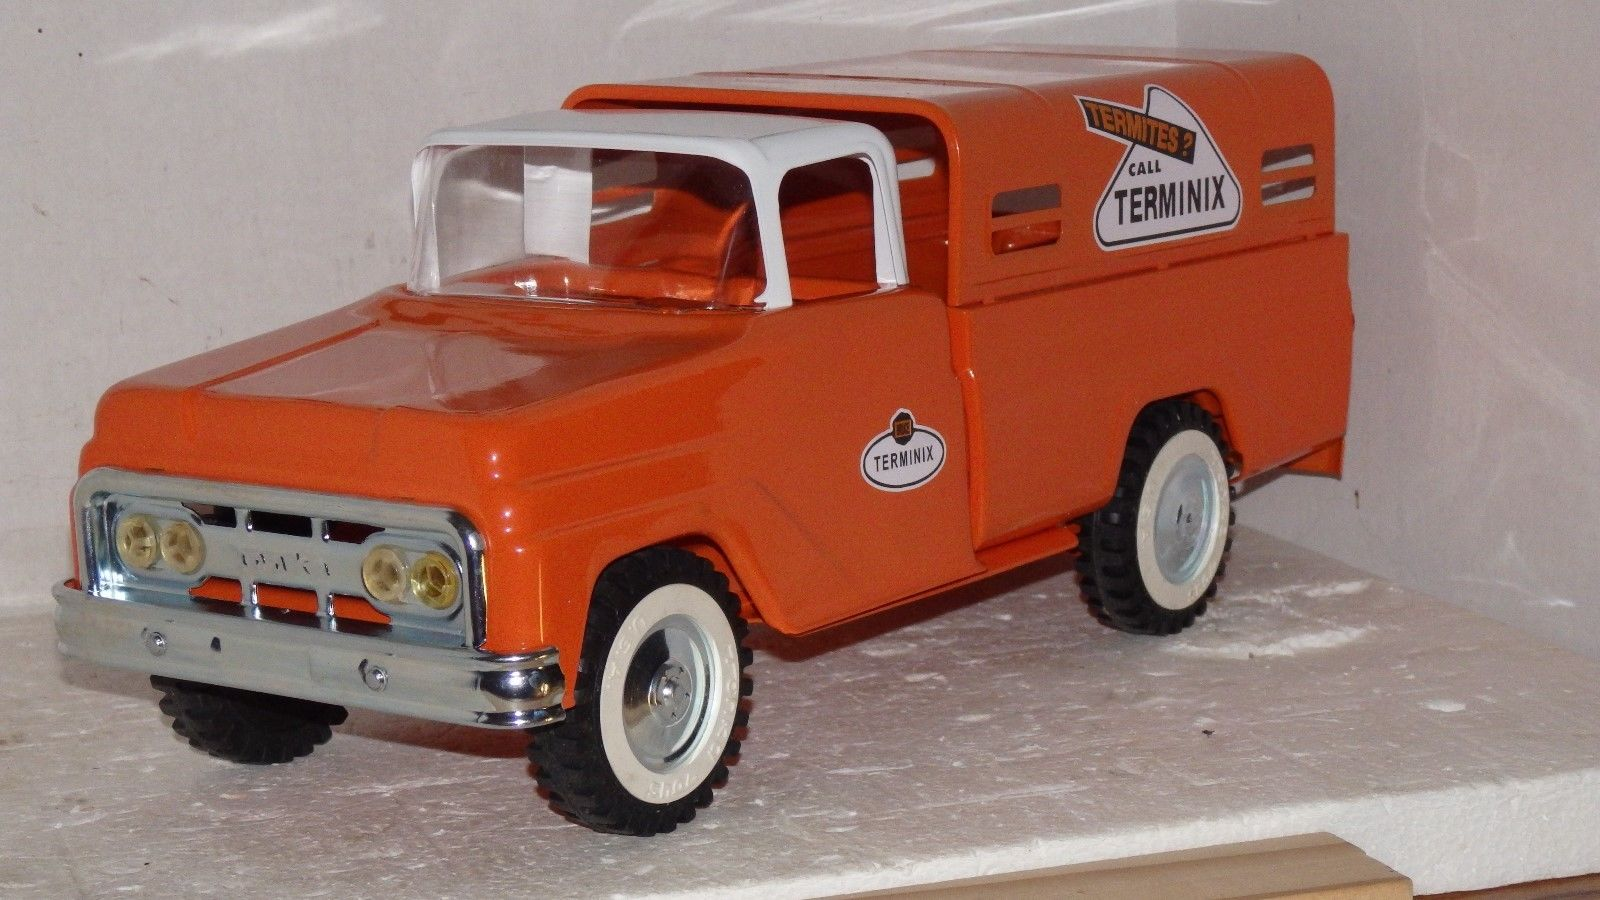 Money No Object: Can You Put A Price On Nostalgia? If This 1963 Tonka Truck Is Any Indication, Yes You Can!